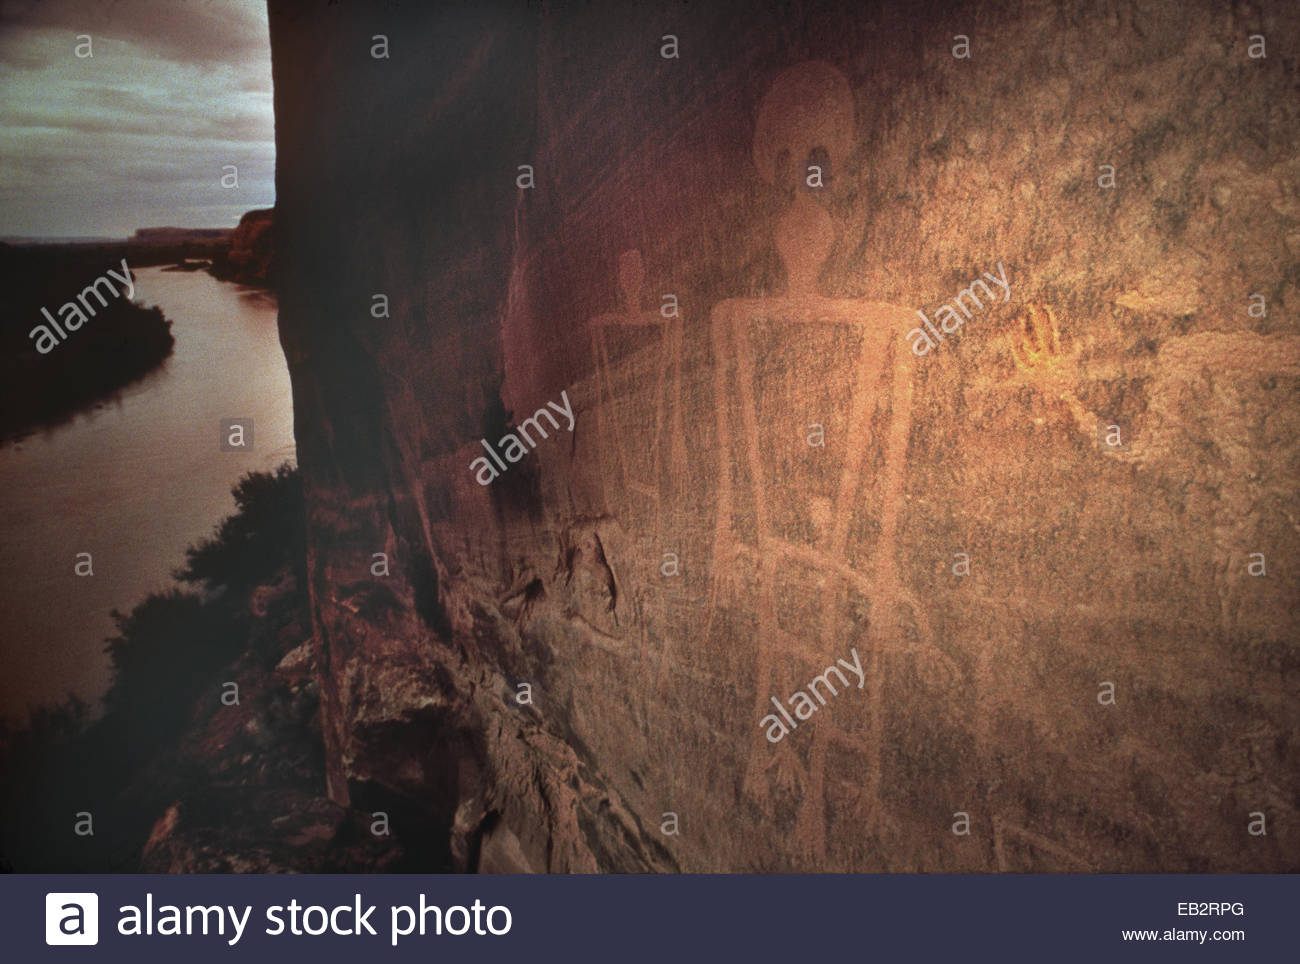 Anasazi pictographs above the San Juan River, Utah, at dusk. - Stock Image